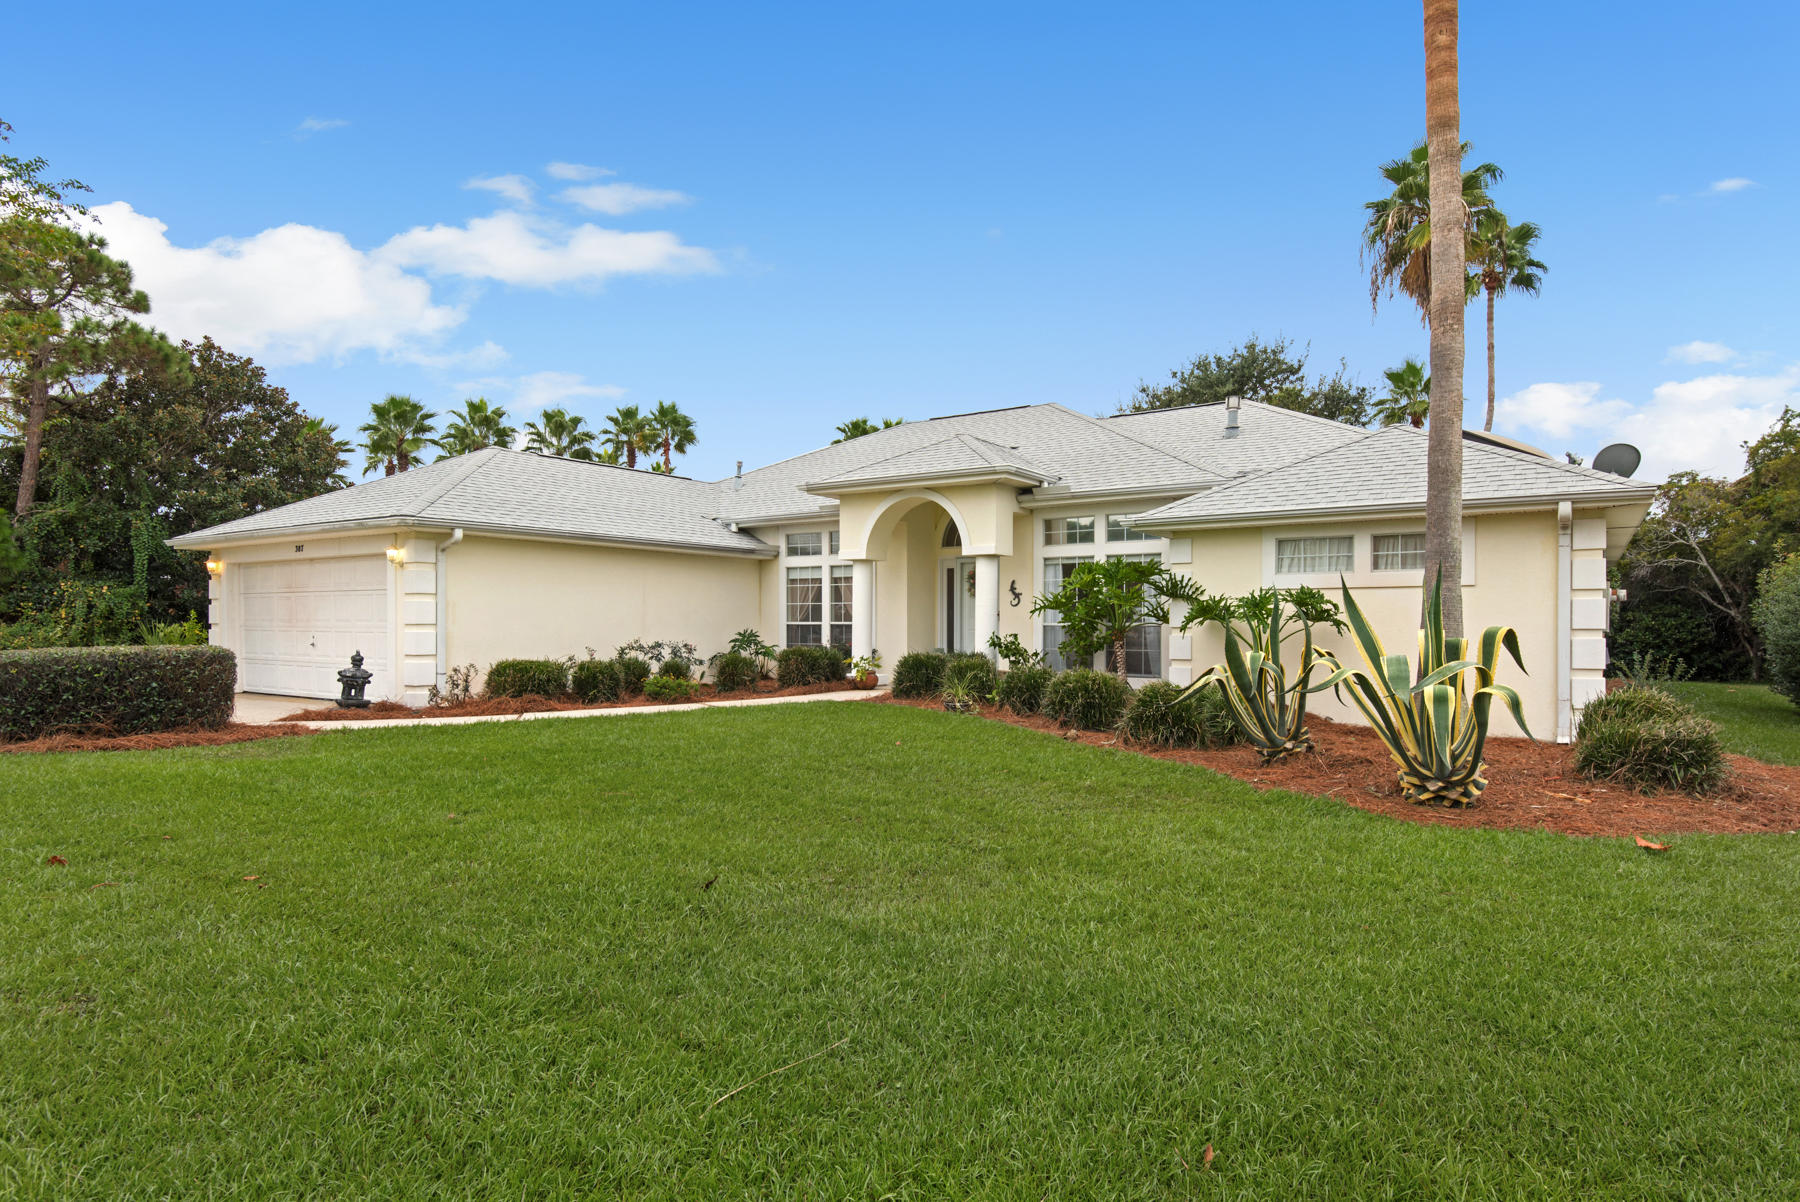 Photo of home for sale at 387 S. Shore Dr, Miramar Beach FL